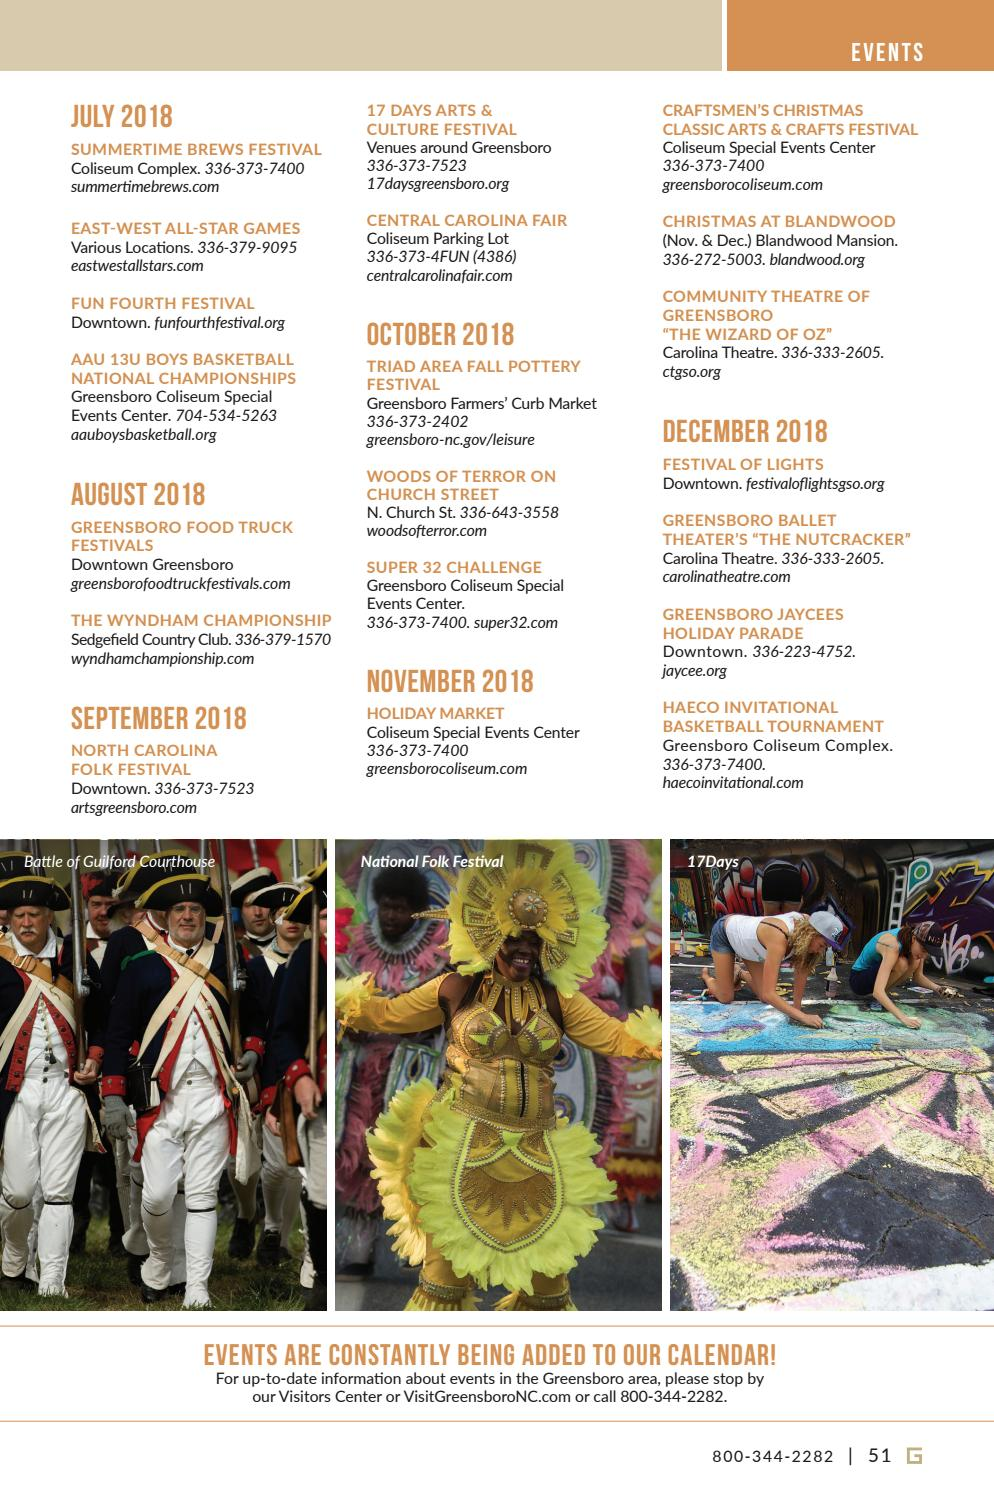 Greensboro Visitors Guide 2018 by Greensboro CVB - issuu